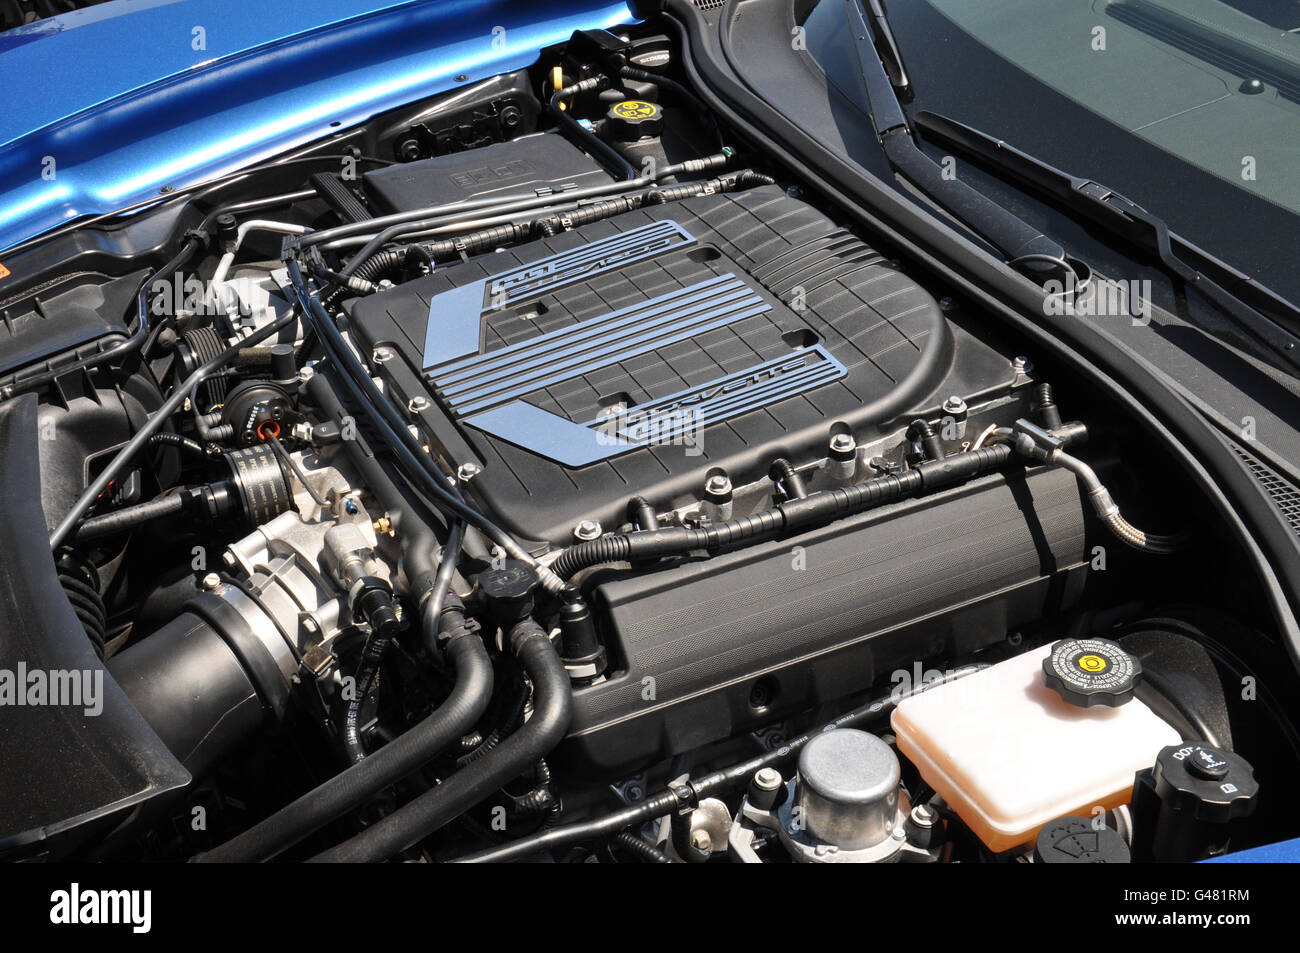 Supercharged Engine Stock Photos Amp Supercharged Engine Stock Images Alamy